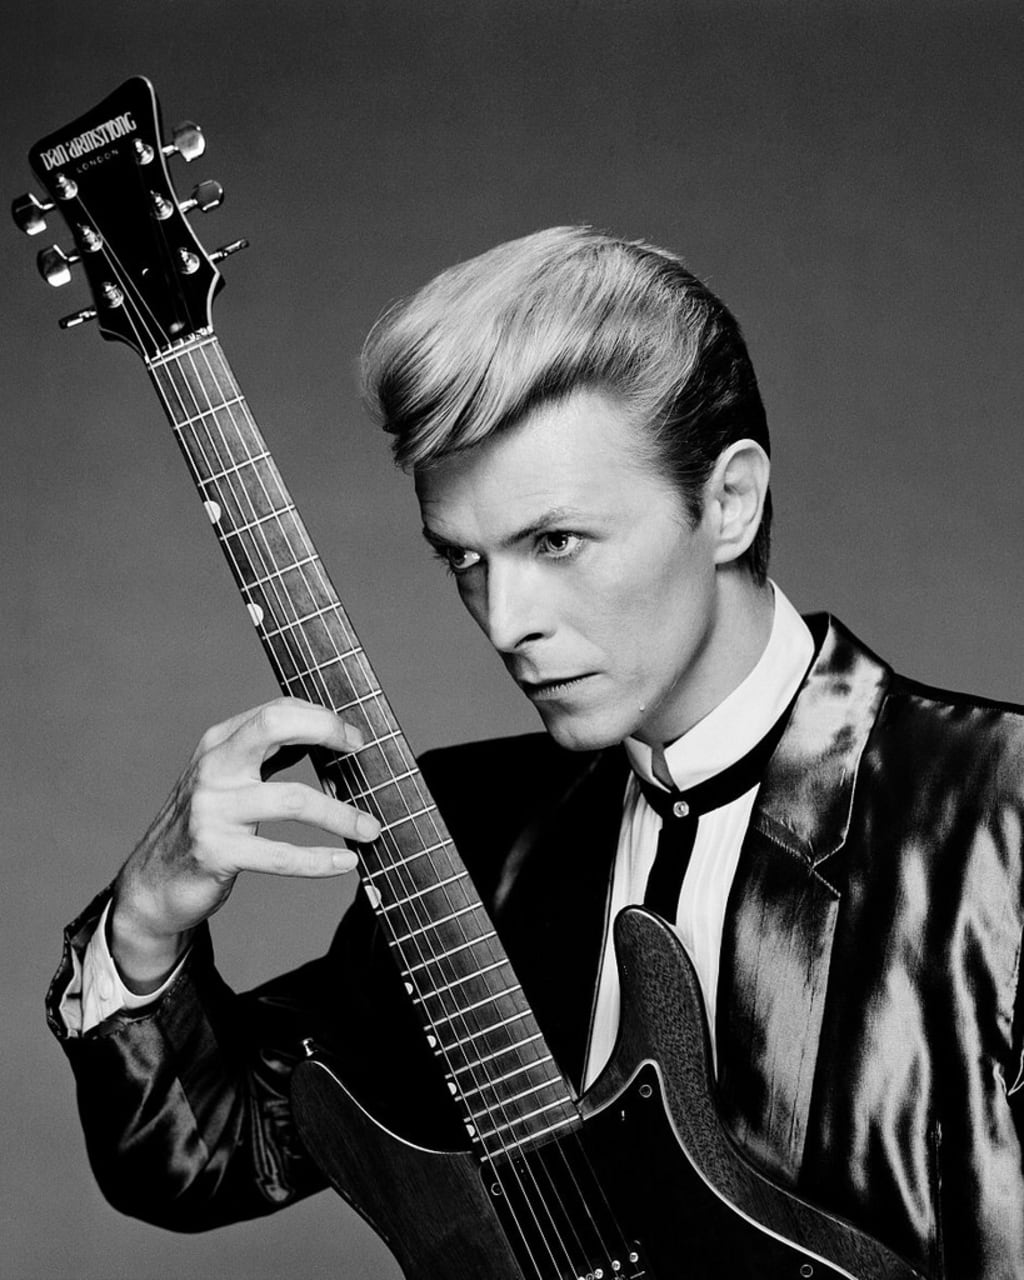 Song Recommendations: David Bowie